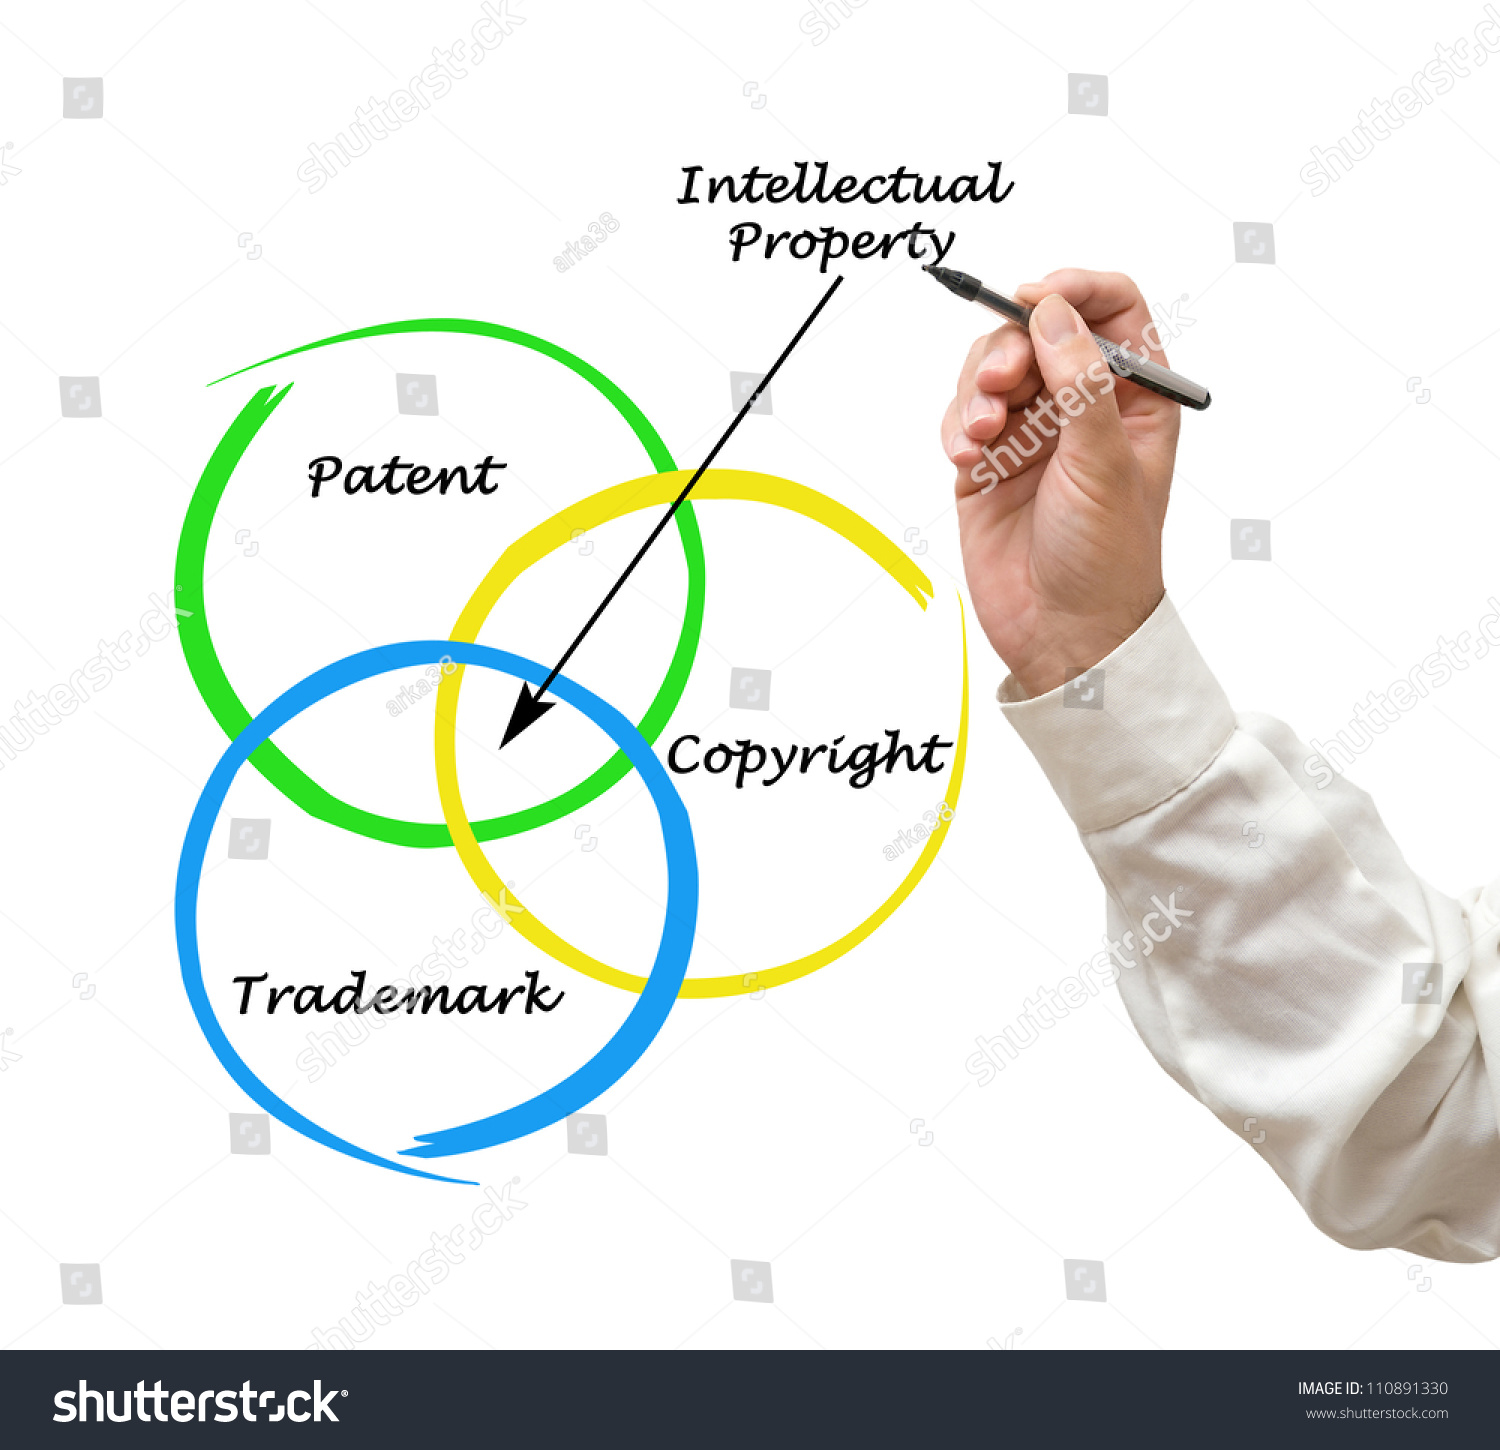 Intellectual Property Protection: Protection Of Intellectual Property Stock Photo 110891330